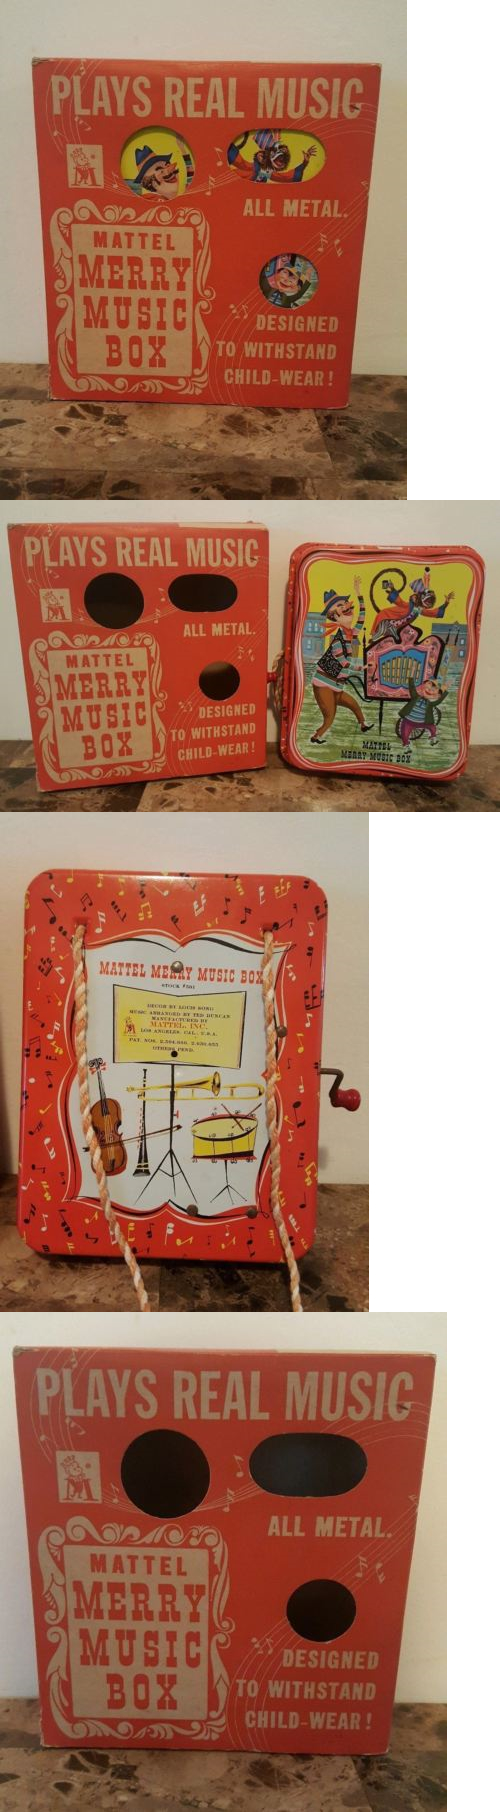 1950 toys images  Other Vintage Tin Toys  Mattel Merry Music Box Not Working